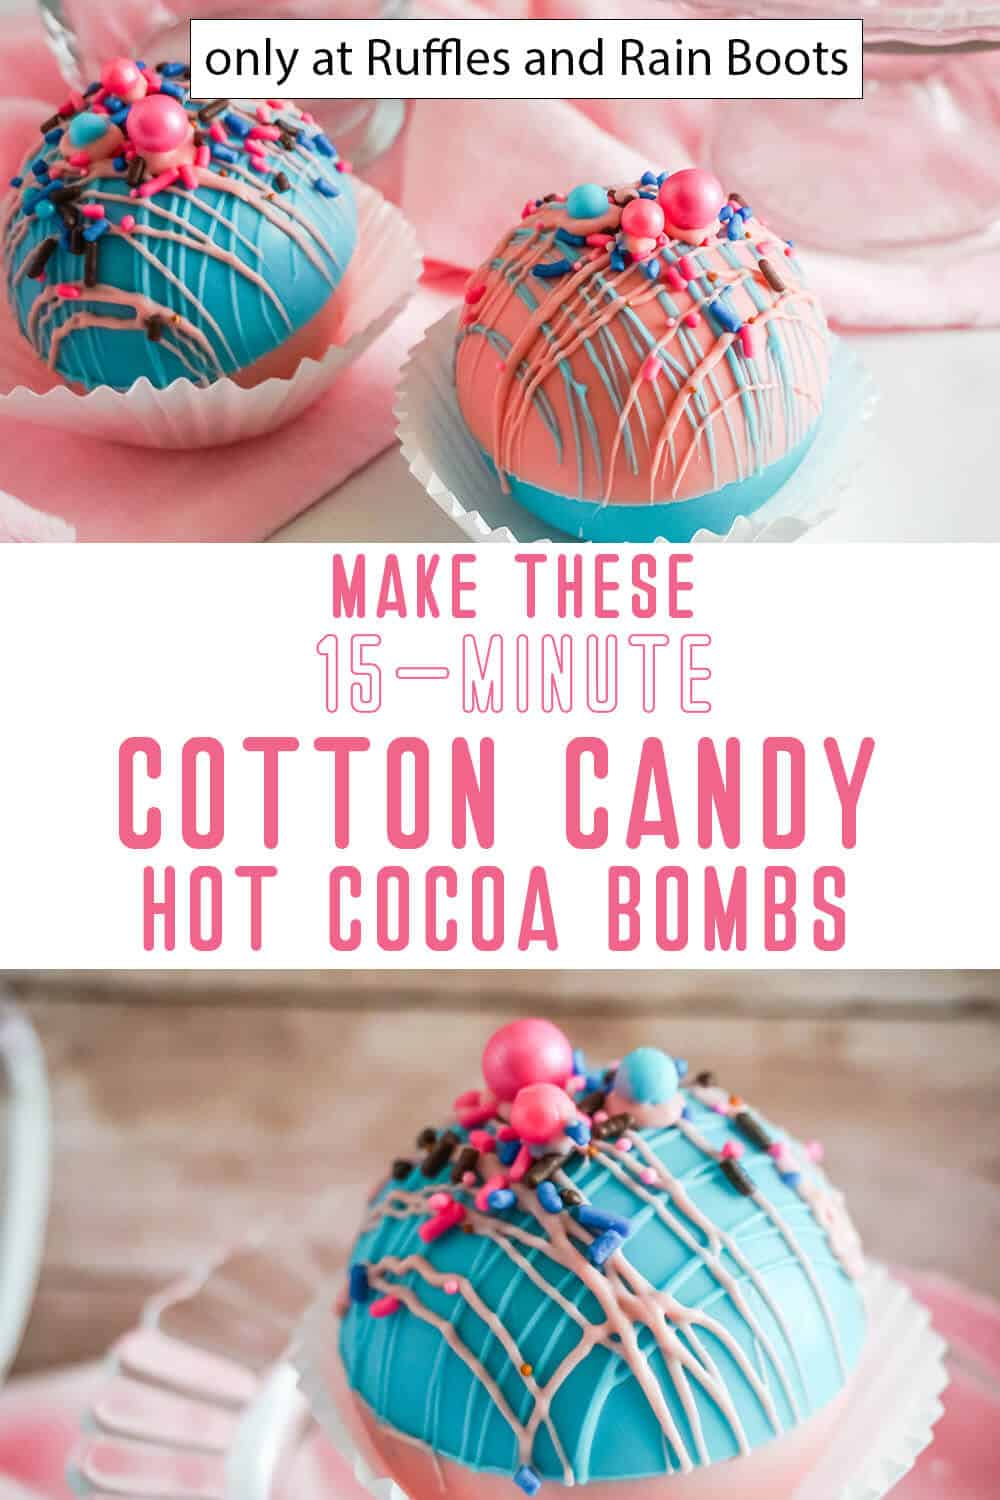 photo collage of hot cocoa bombs with cotton candy and sprinkles with text which reads make these 15-minute cotton candy hot cocoa bombs